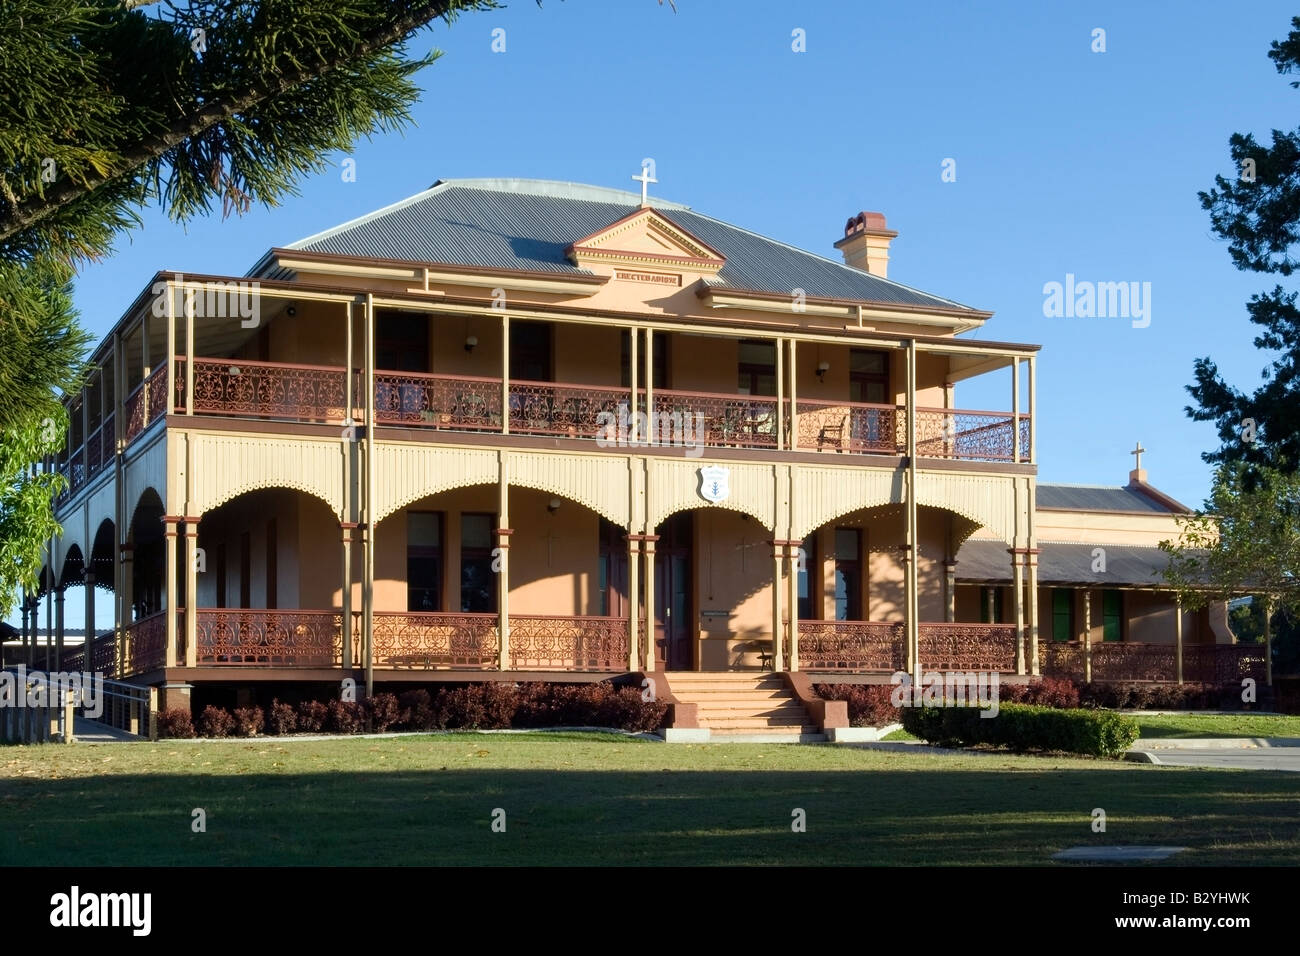 Imposing entrance to St Michael's Convent, Maryborough, Queensland - Stock Image